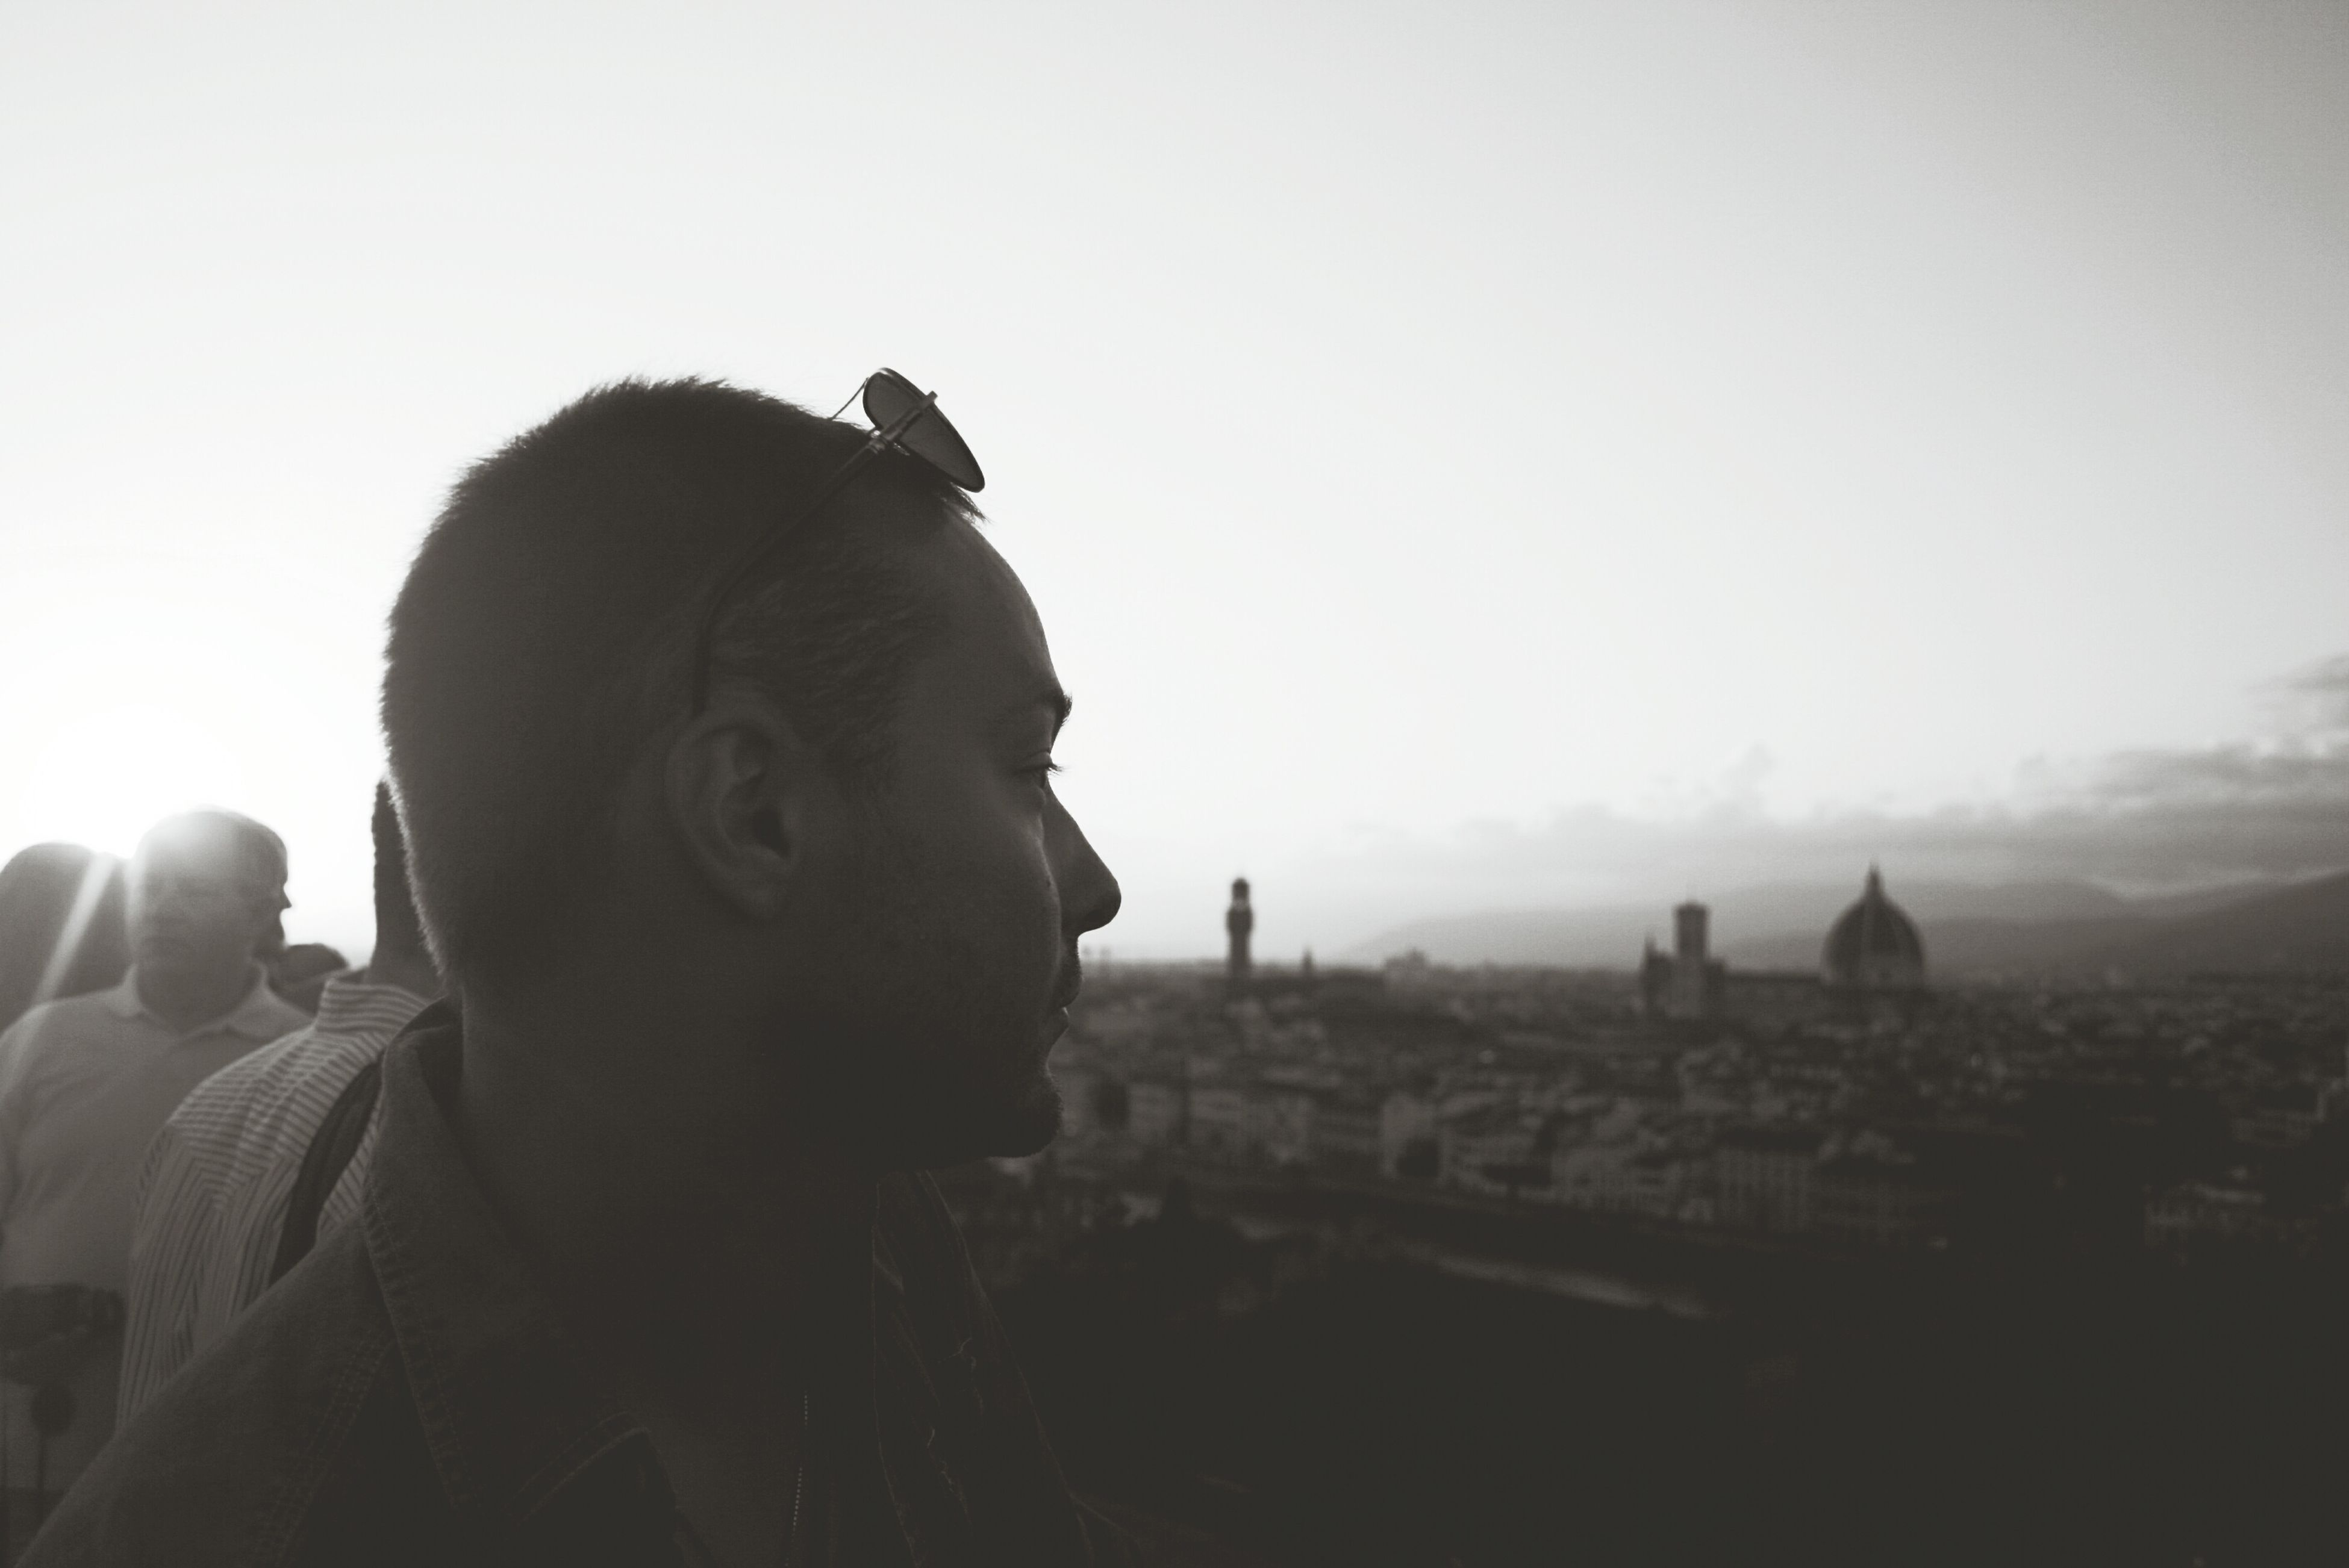 clear sky, copy space, lifestyles, headshot, leisure activity, one animal, men, animal themes, mammal, looking away, sitting, standing, young men, contemplation, silhouette, waist up, sky, rear view